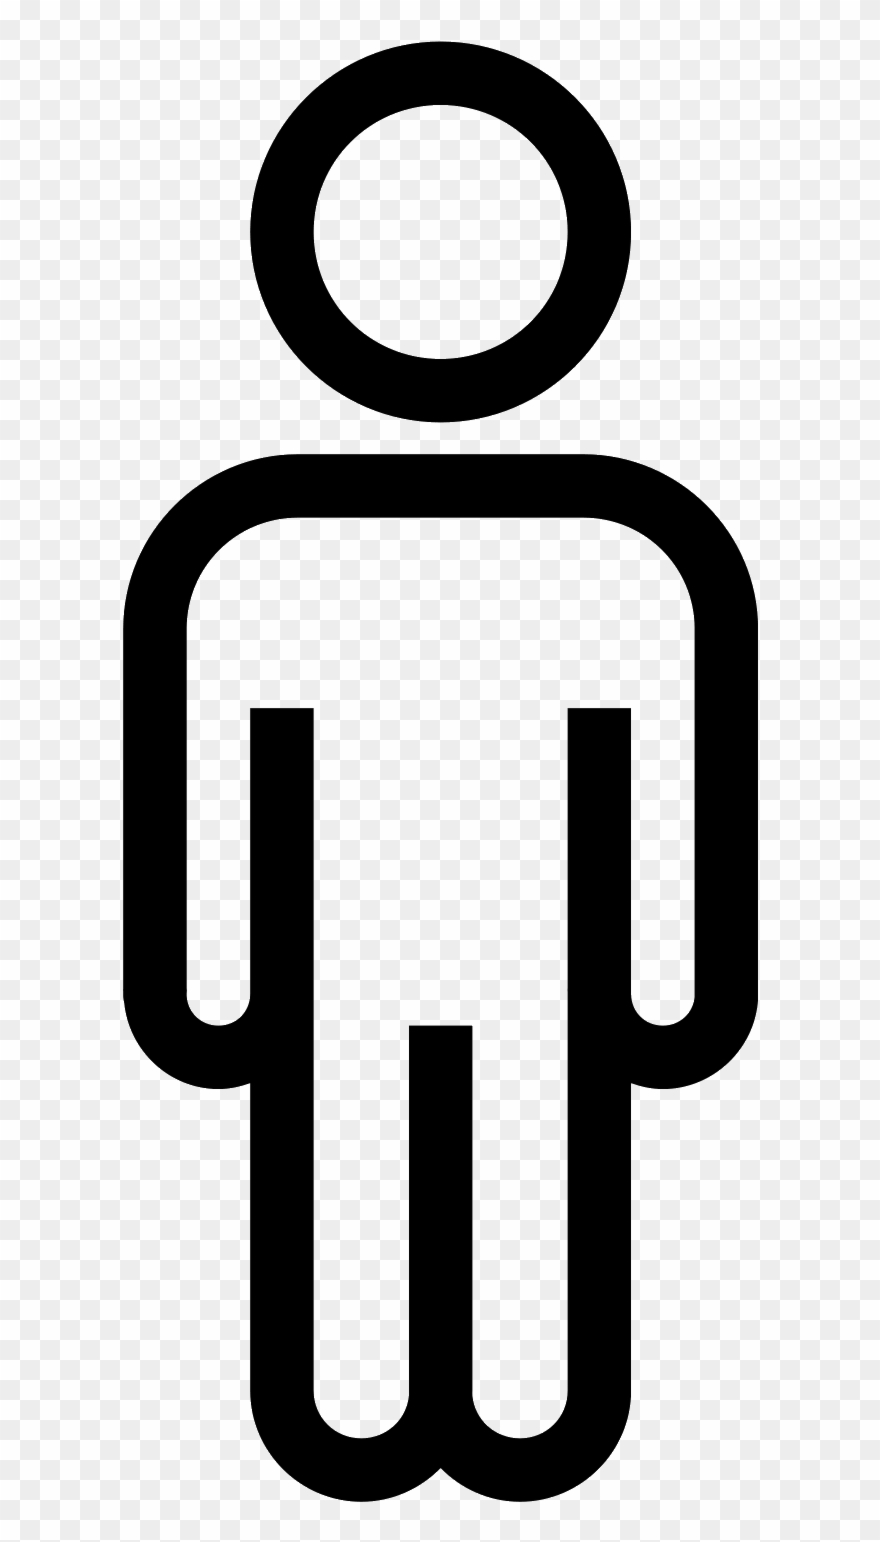 Man icon clipart banner free stock Person Outline Png - Man Icon Clipart (#586556) - PinClipart banner free stock